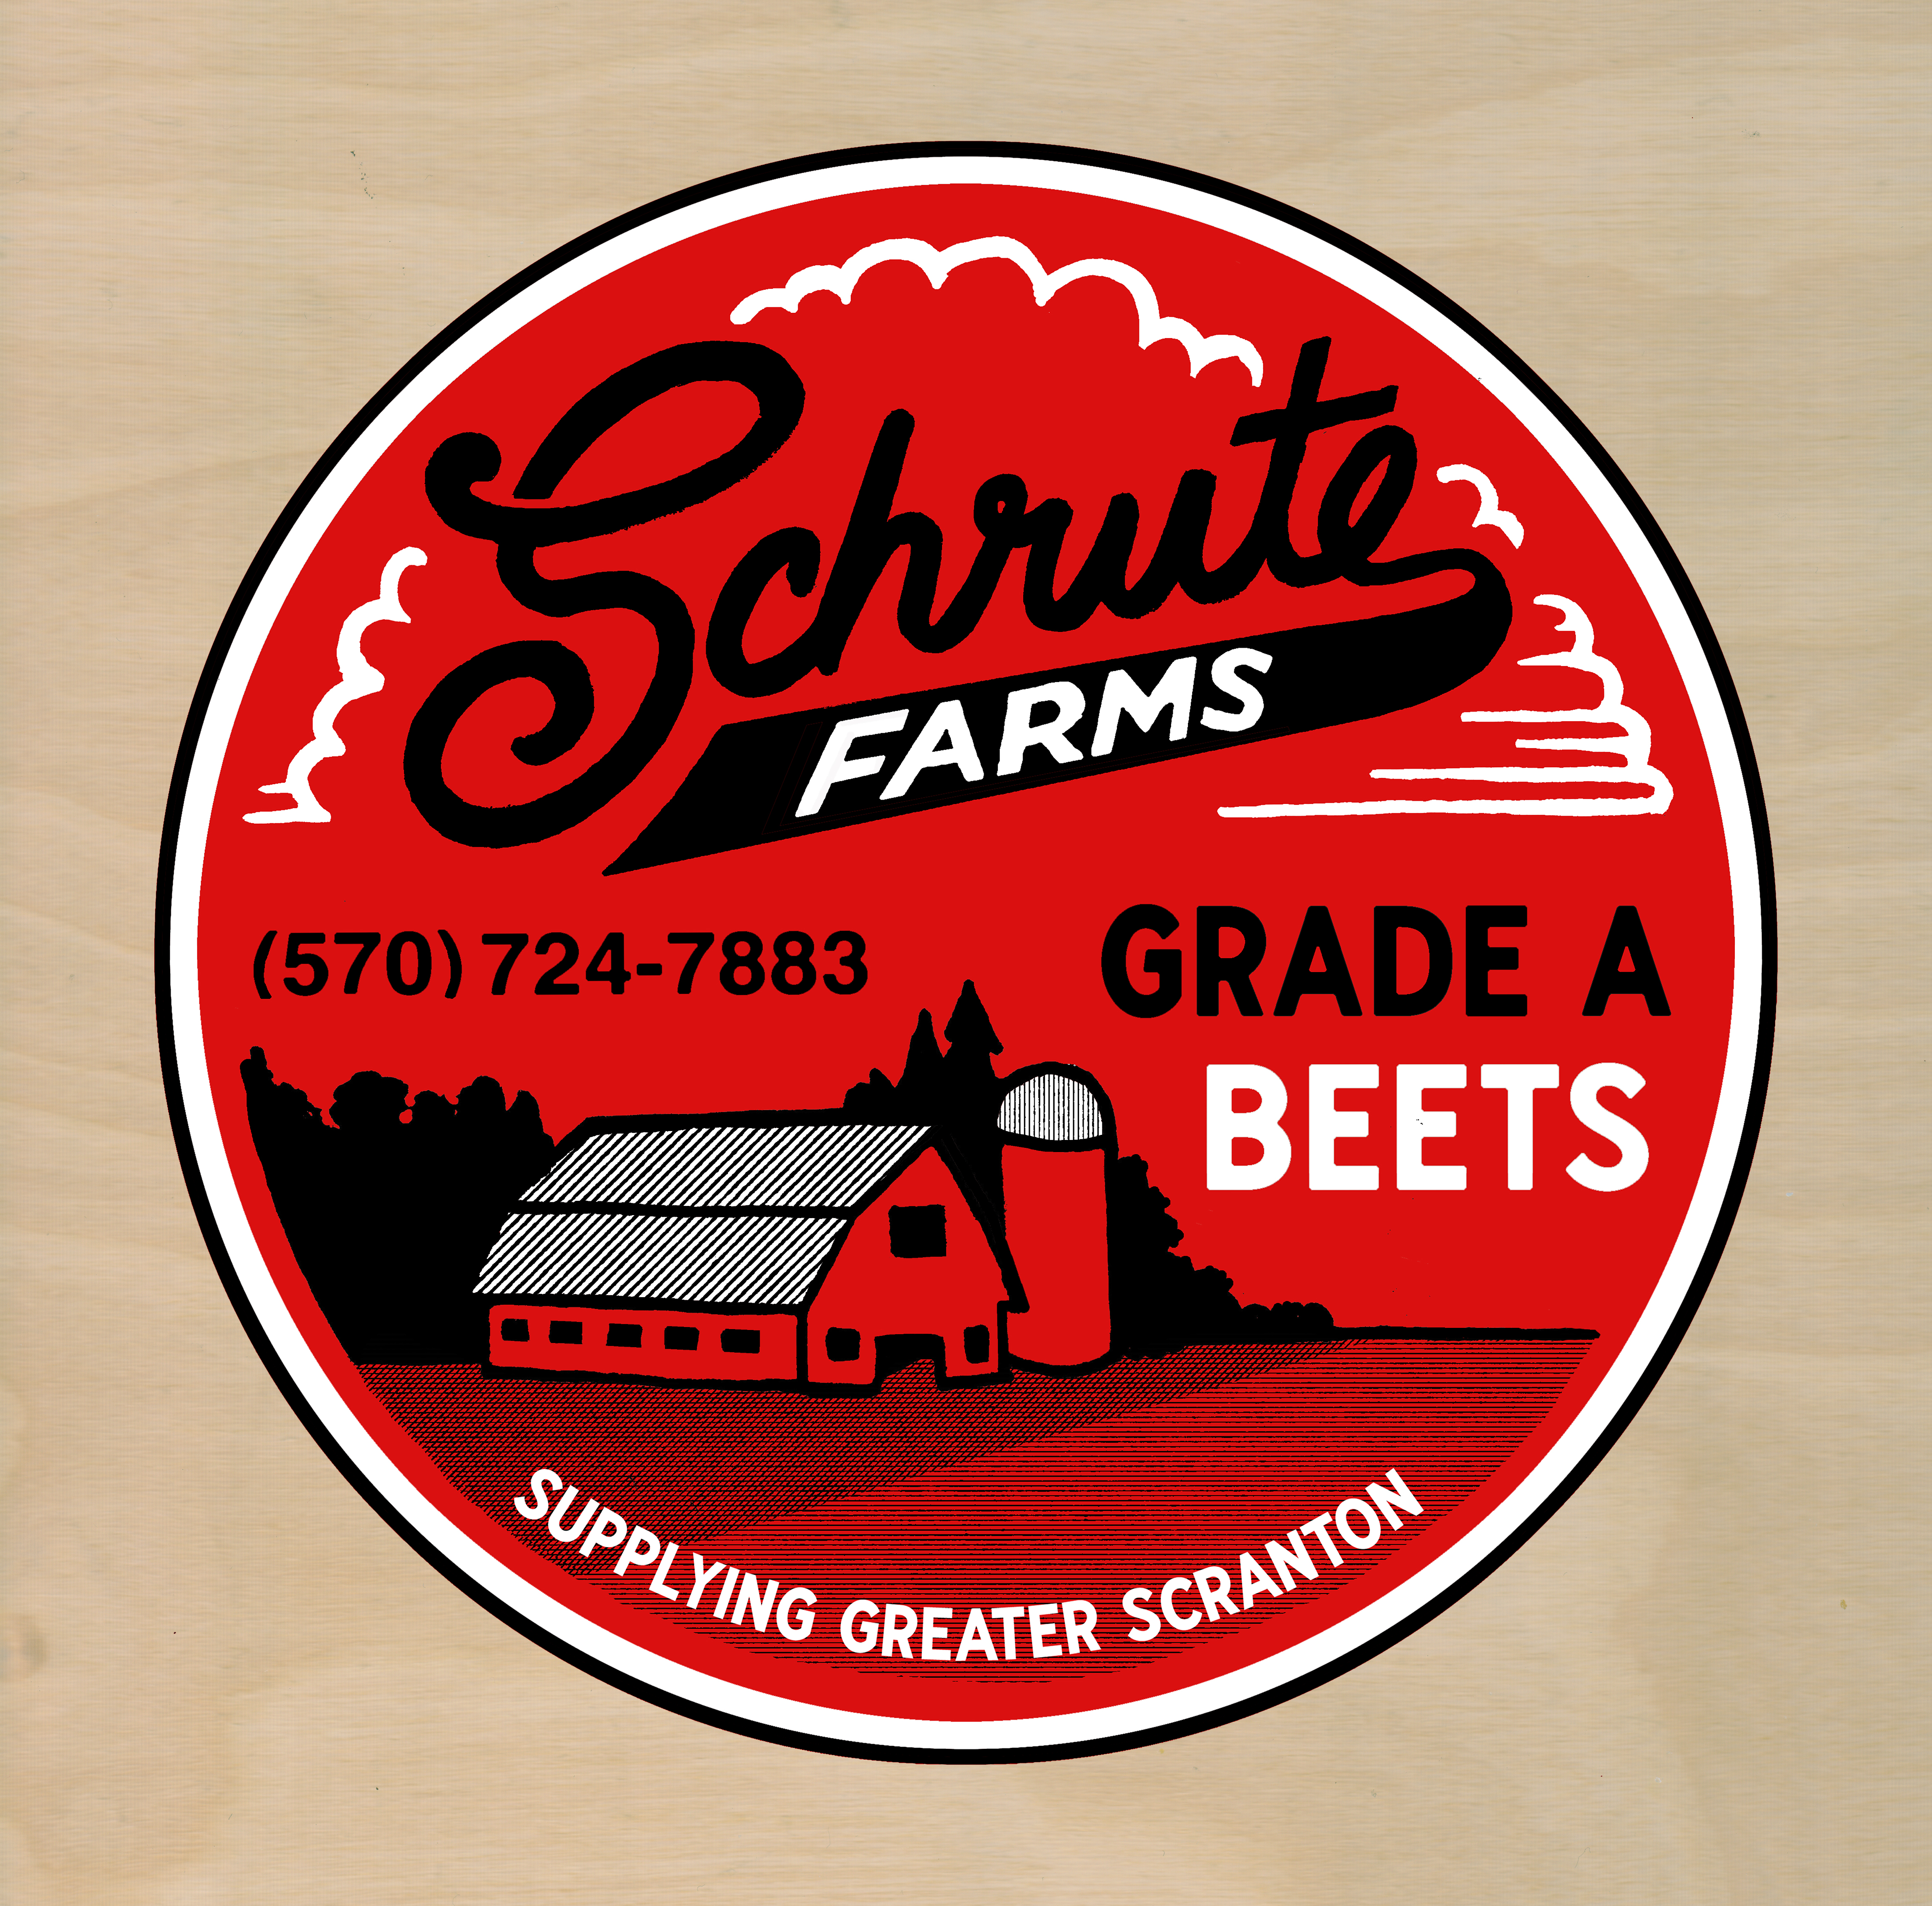 Schrute Farms